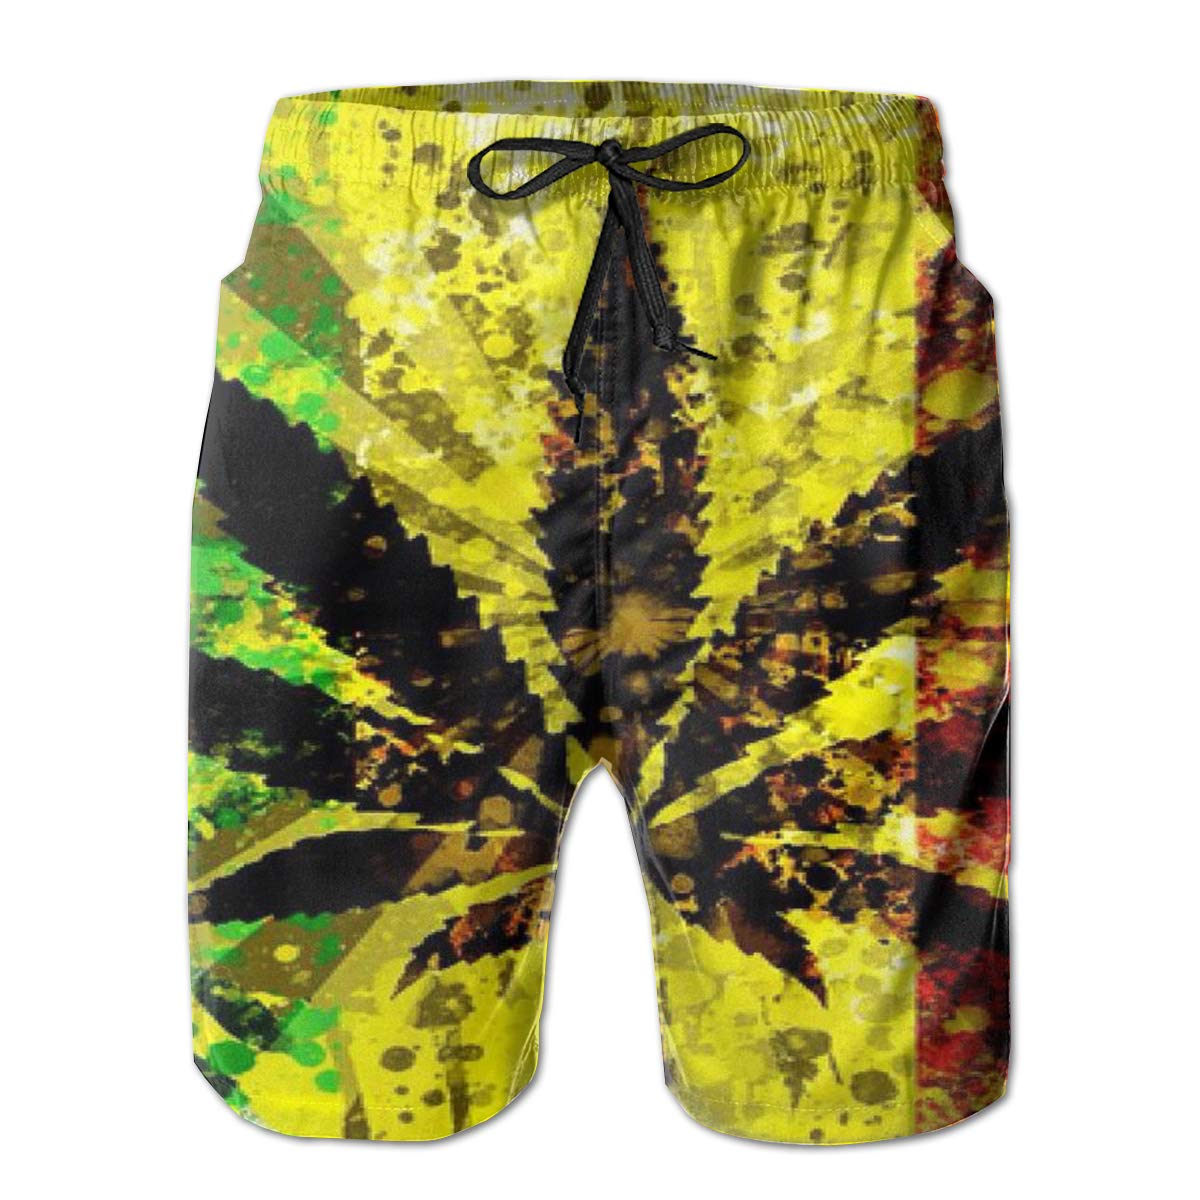 RolandraceWatercolor Rasta Weed Mens Colorful Swim Trunks Beach Board Shorts with Lining